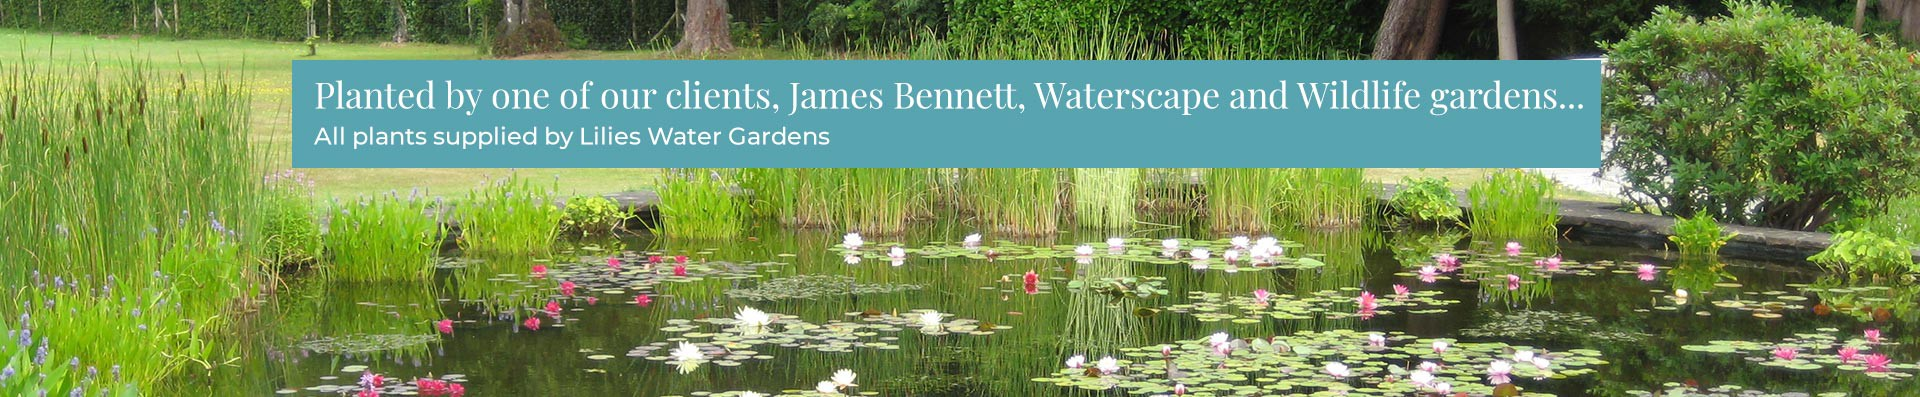 Planted by one of our clients, James Bennett